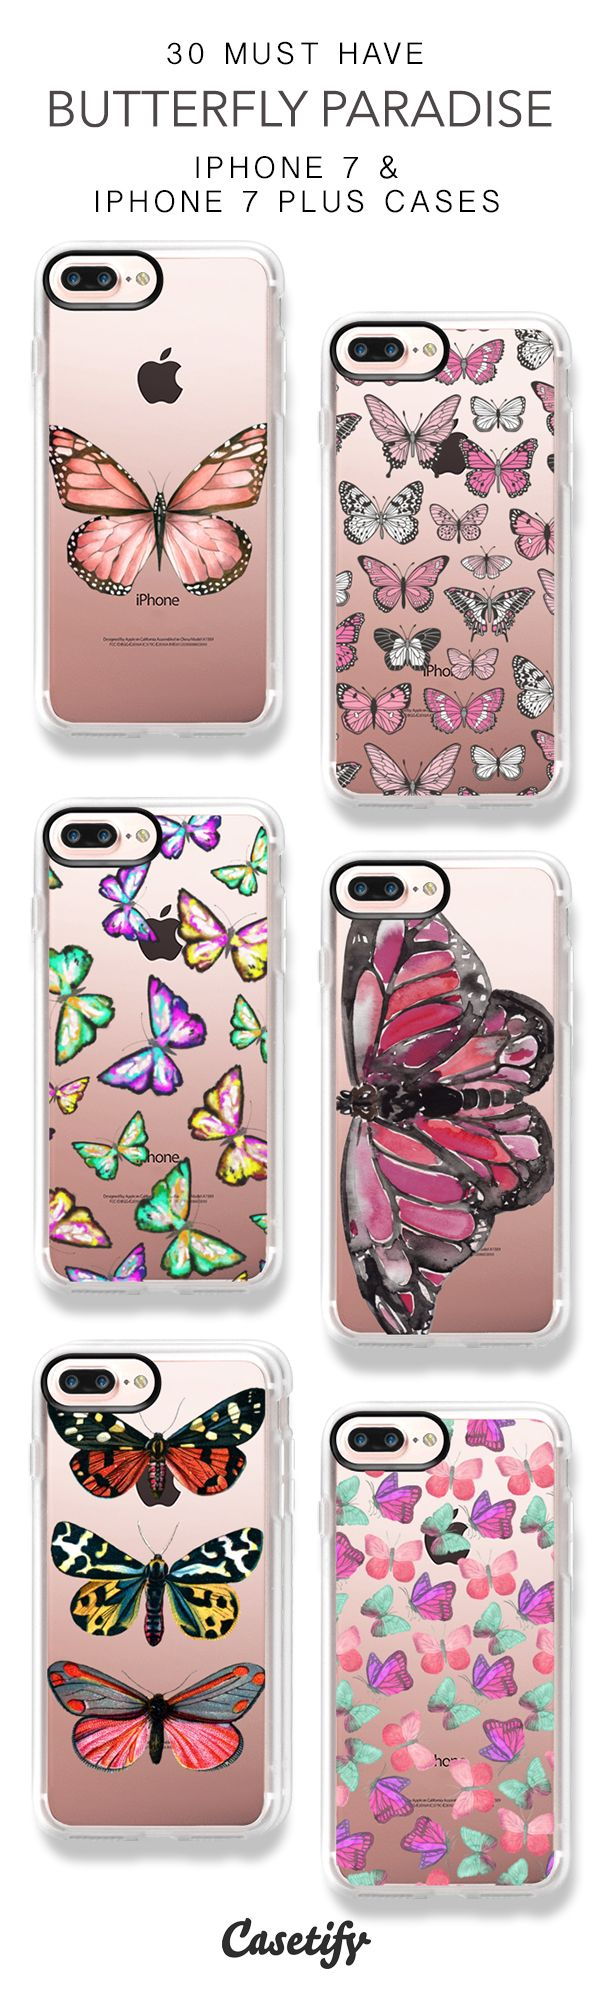 30 Must Have Butterfly Paradise iPhone 7 Cases and iPhone 7 Plus Cases. More Butterflies iPhone case here > https://www.casetify.com/collections/top_100_designs#/?vc=Vb5MnFudxU